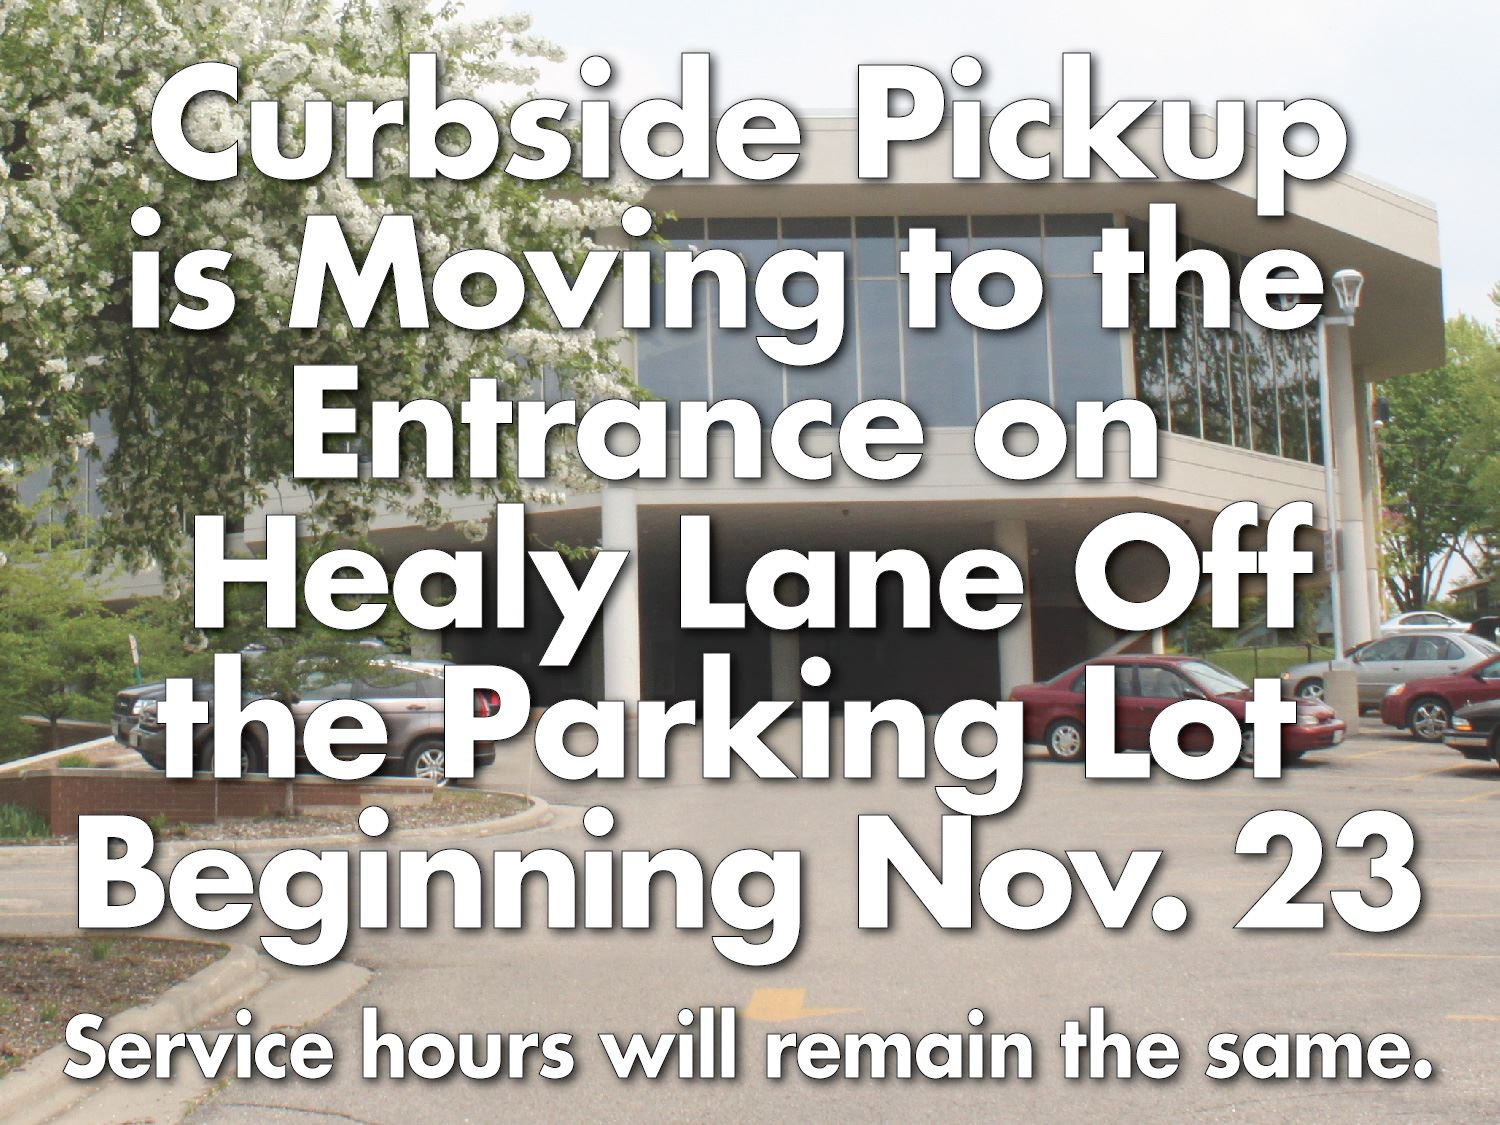 Curbside moving to Healy Lane for Winter